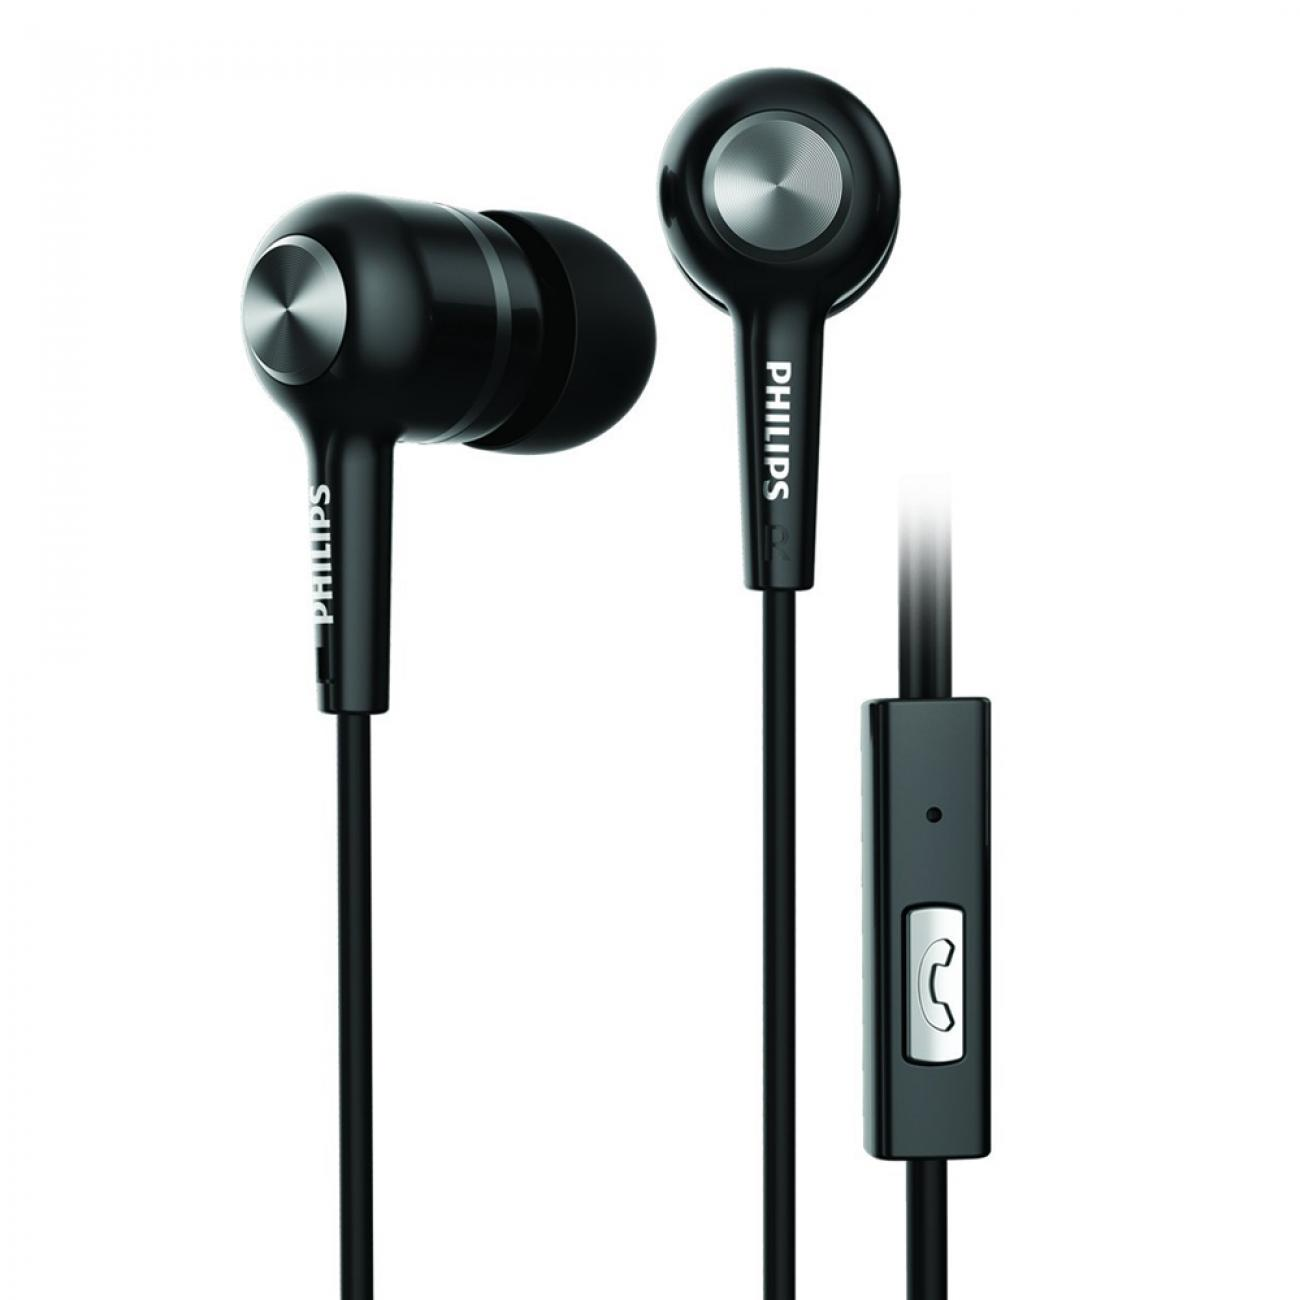 Philips-SHE1505-Headphones-and-Headstes-491378220-i-1-1200Wx1200H